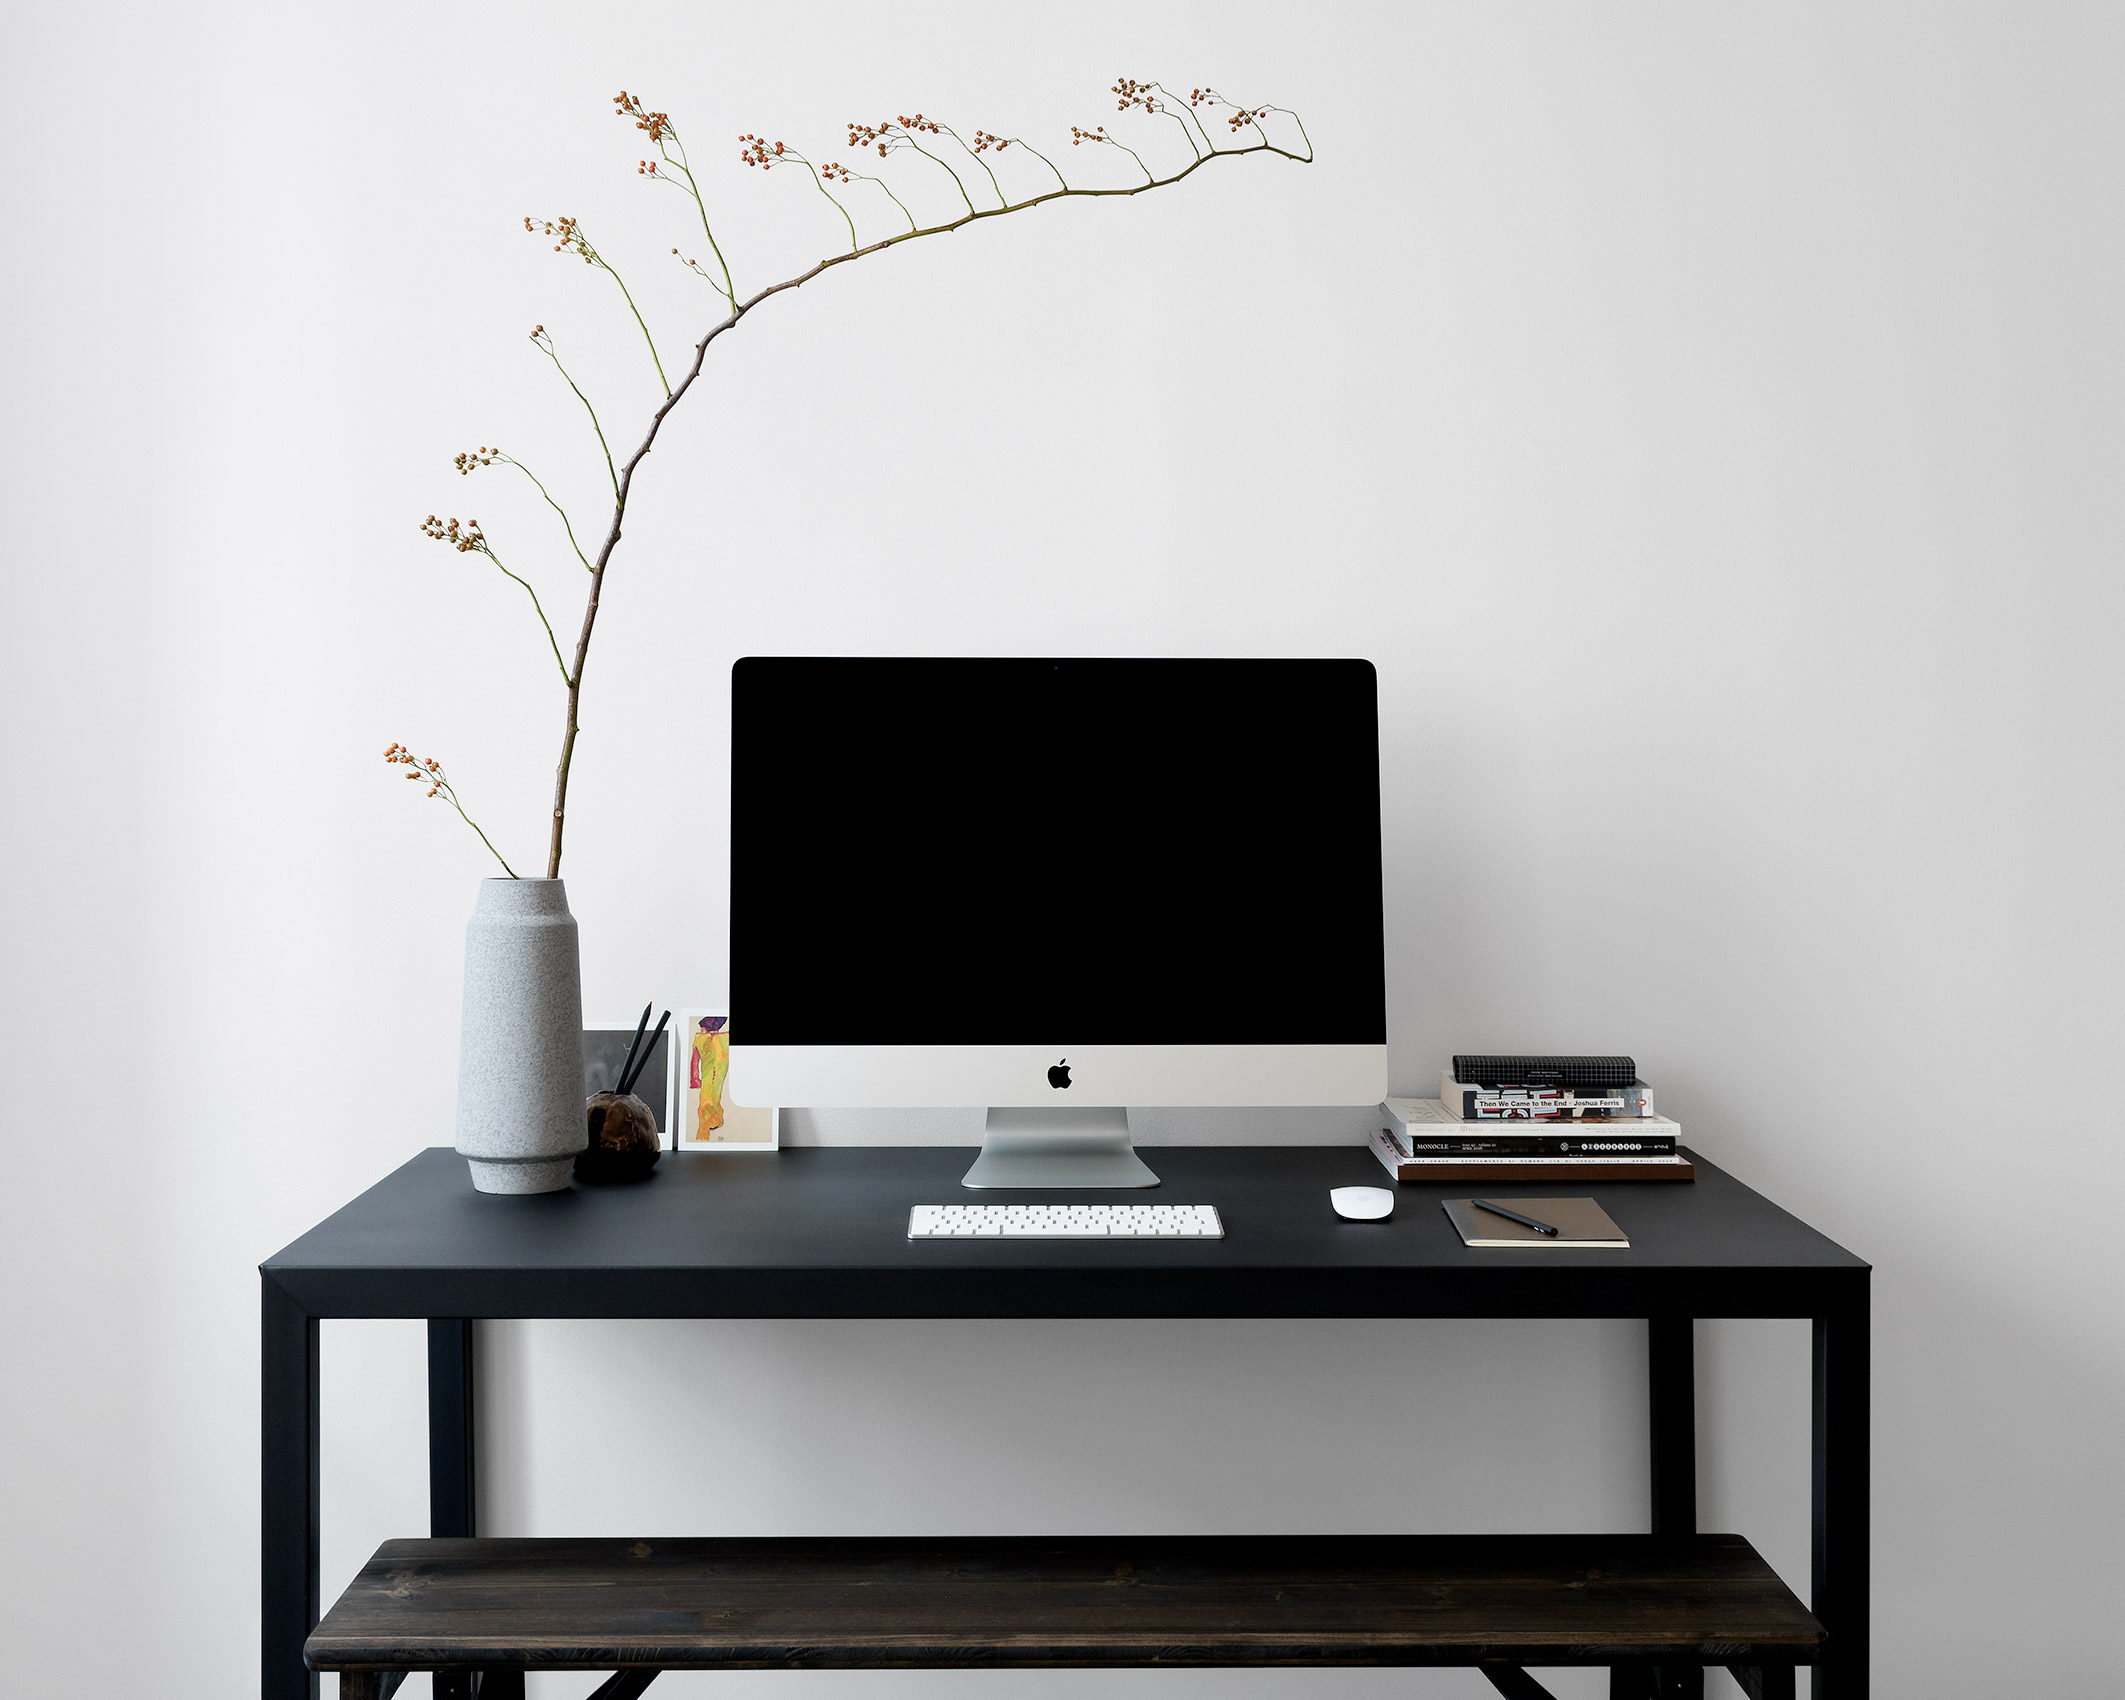 Black metal desk with iMAC and Japanese concrete vase